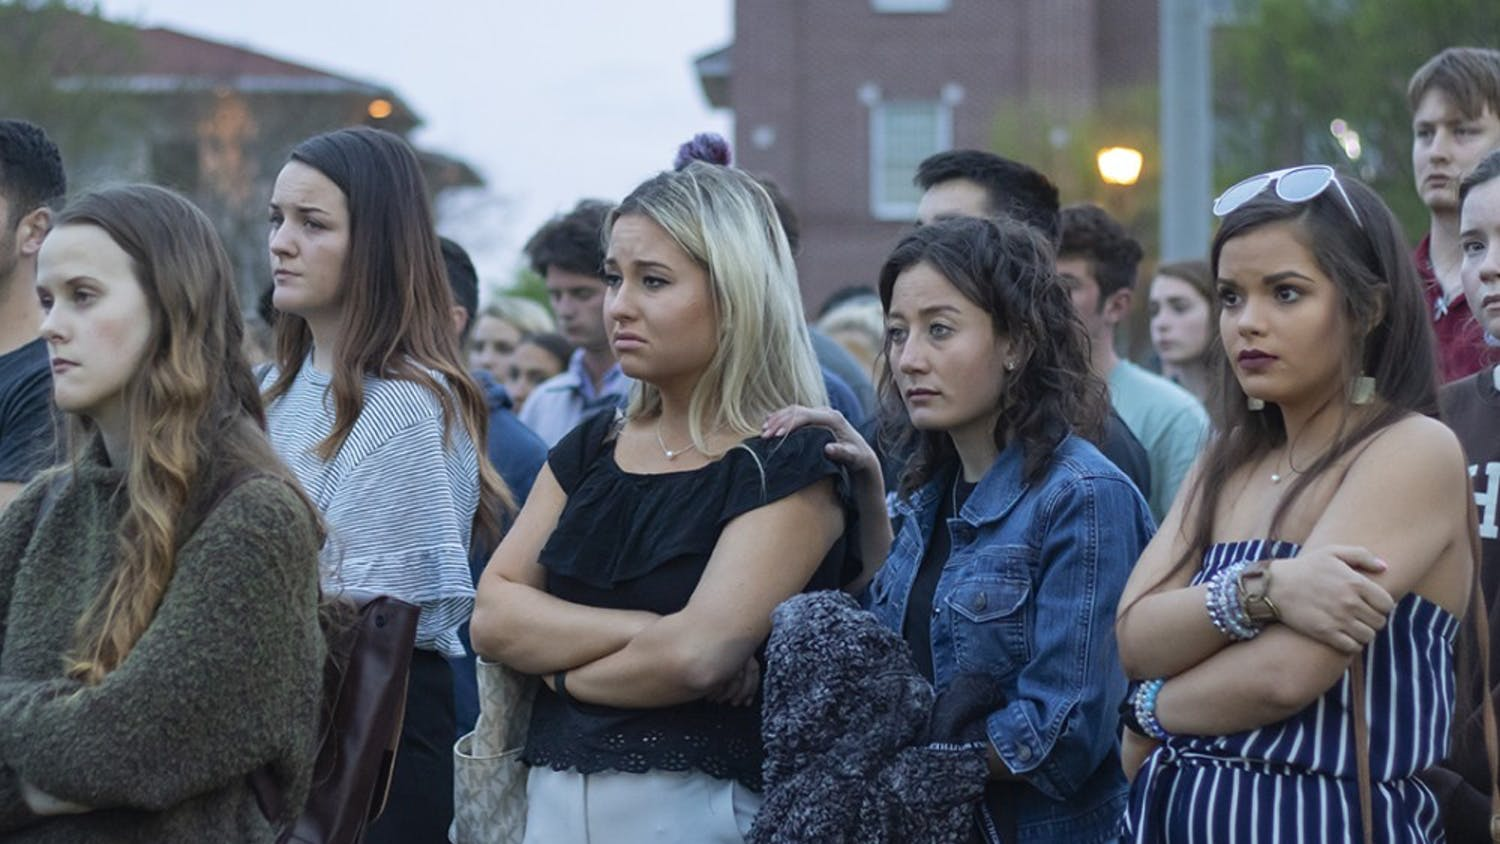 """Students mourn and comfort each other at a vigil for slain USC student Samantha """"Sami"""" Josephson."""